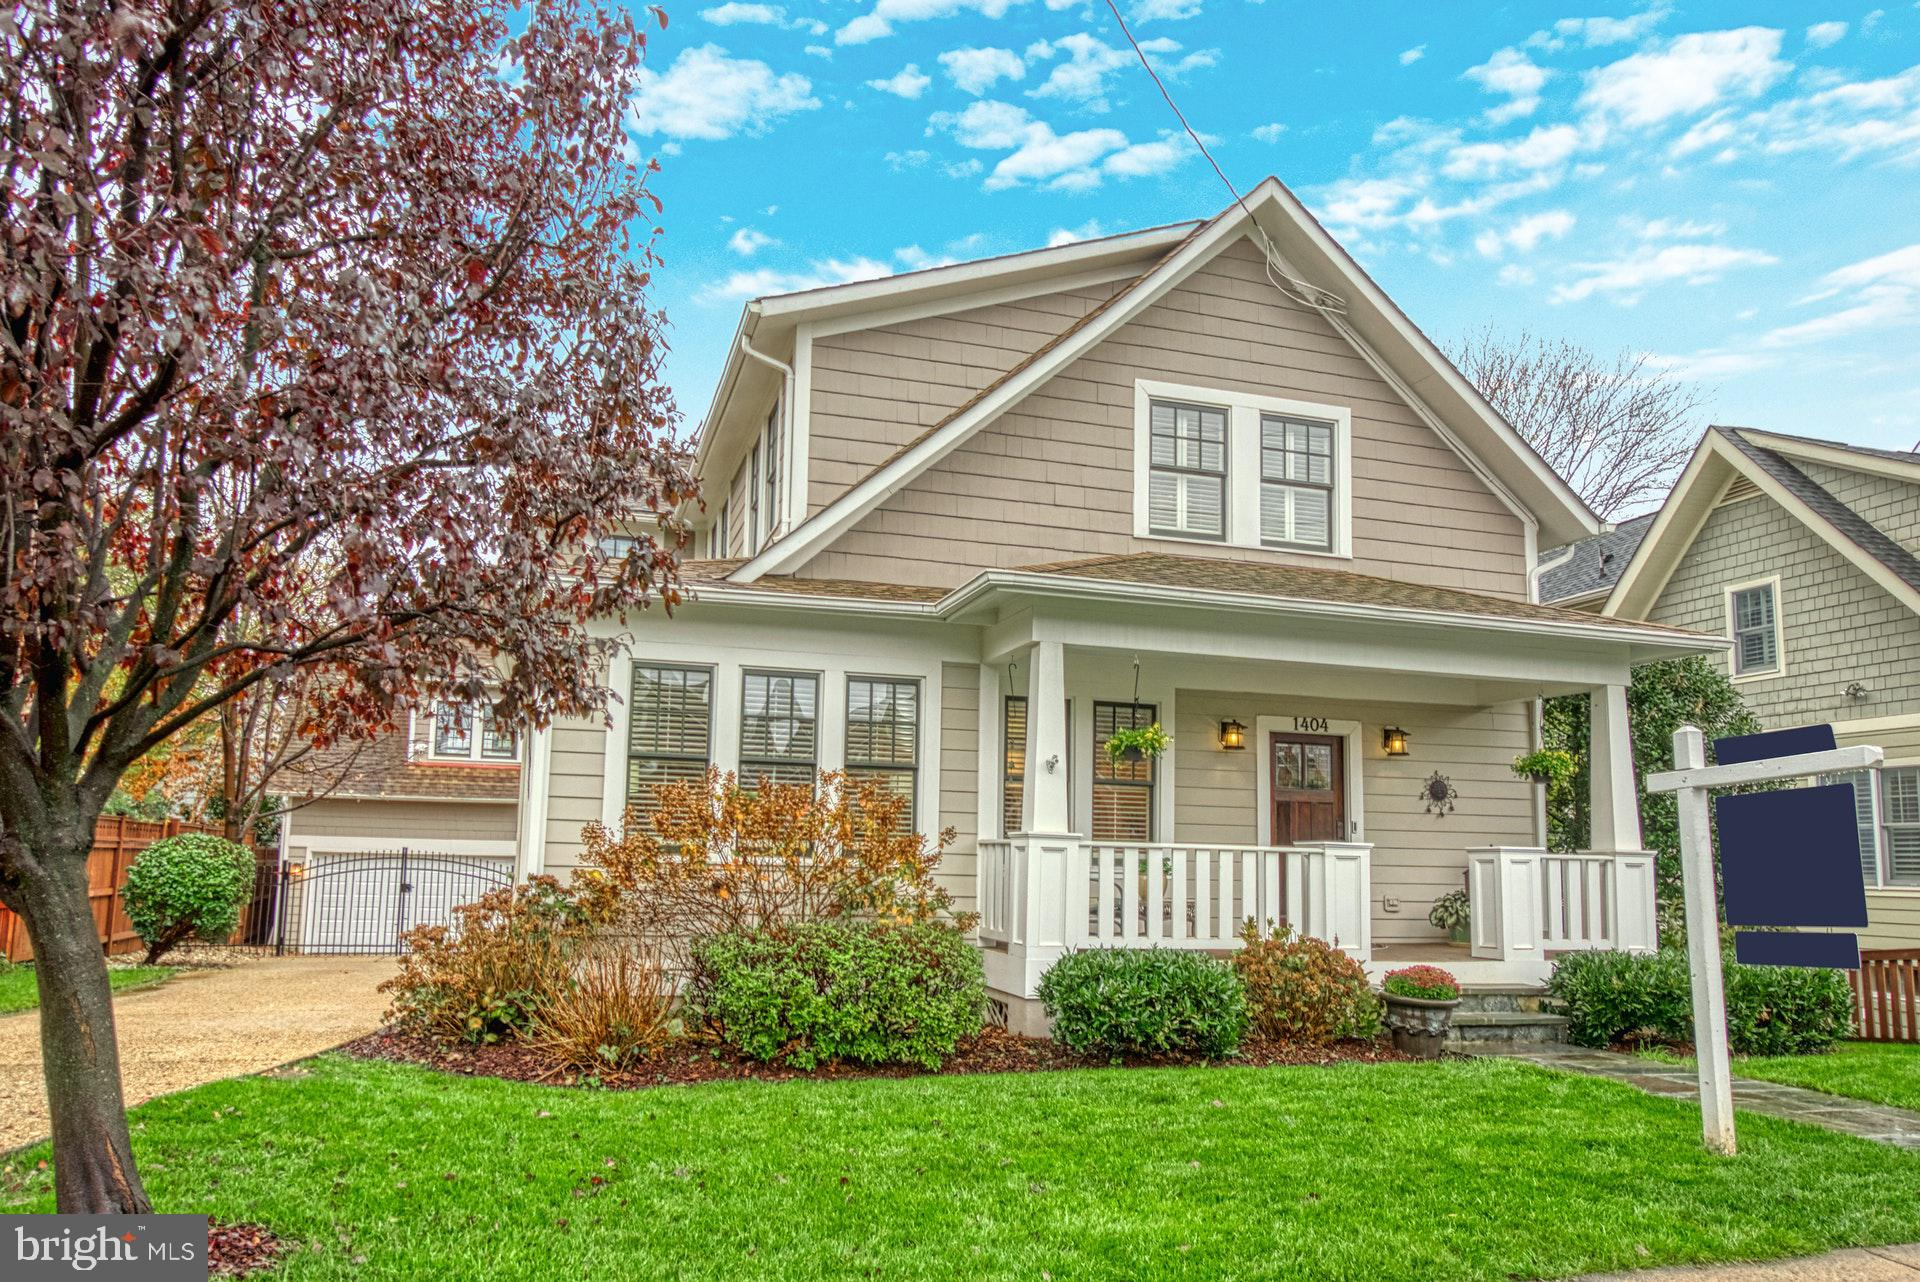 This beautiful Craftsman-styled home sits on a 7,154 square foot lot in sought after Lyon Village.